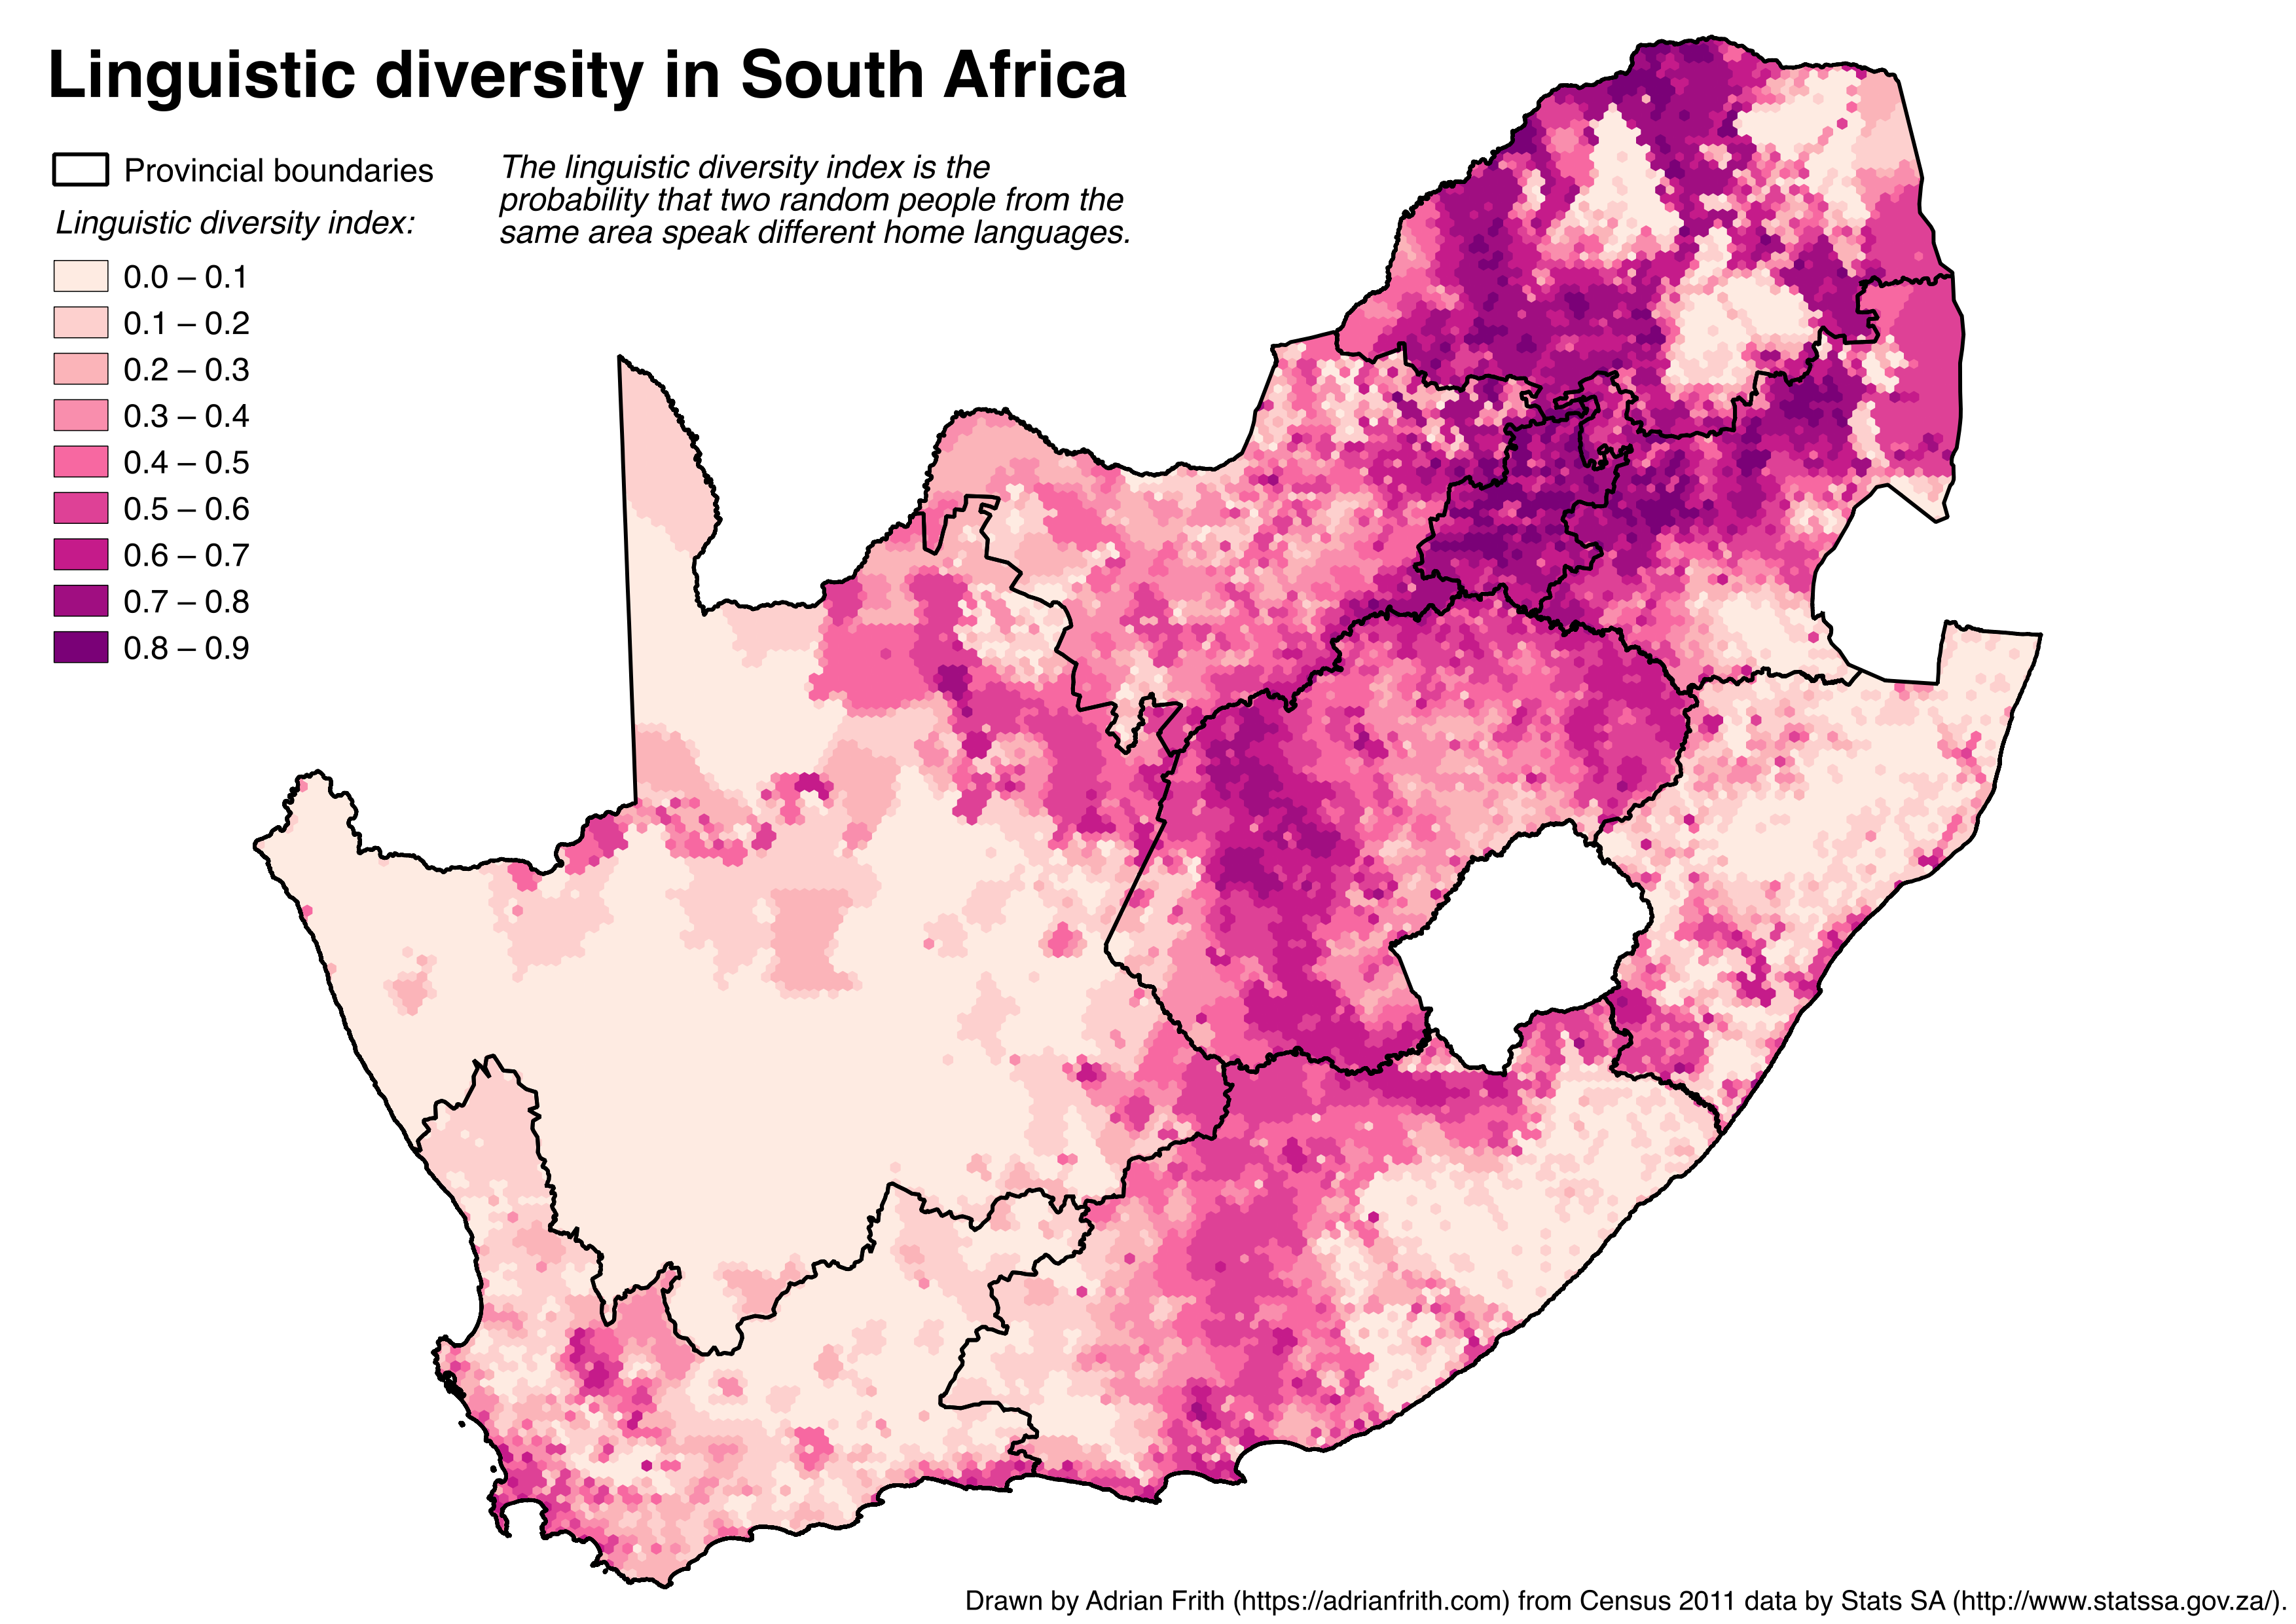 Linguistic diversity map of South Africa